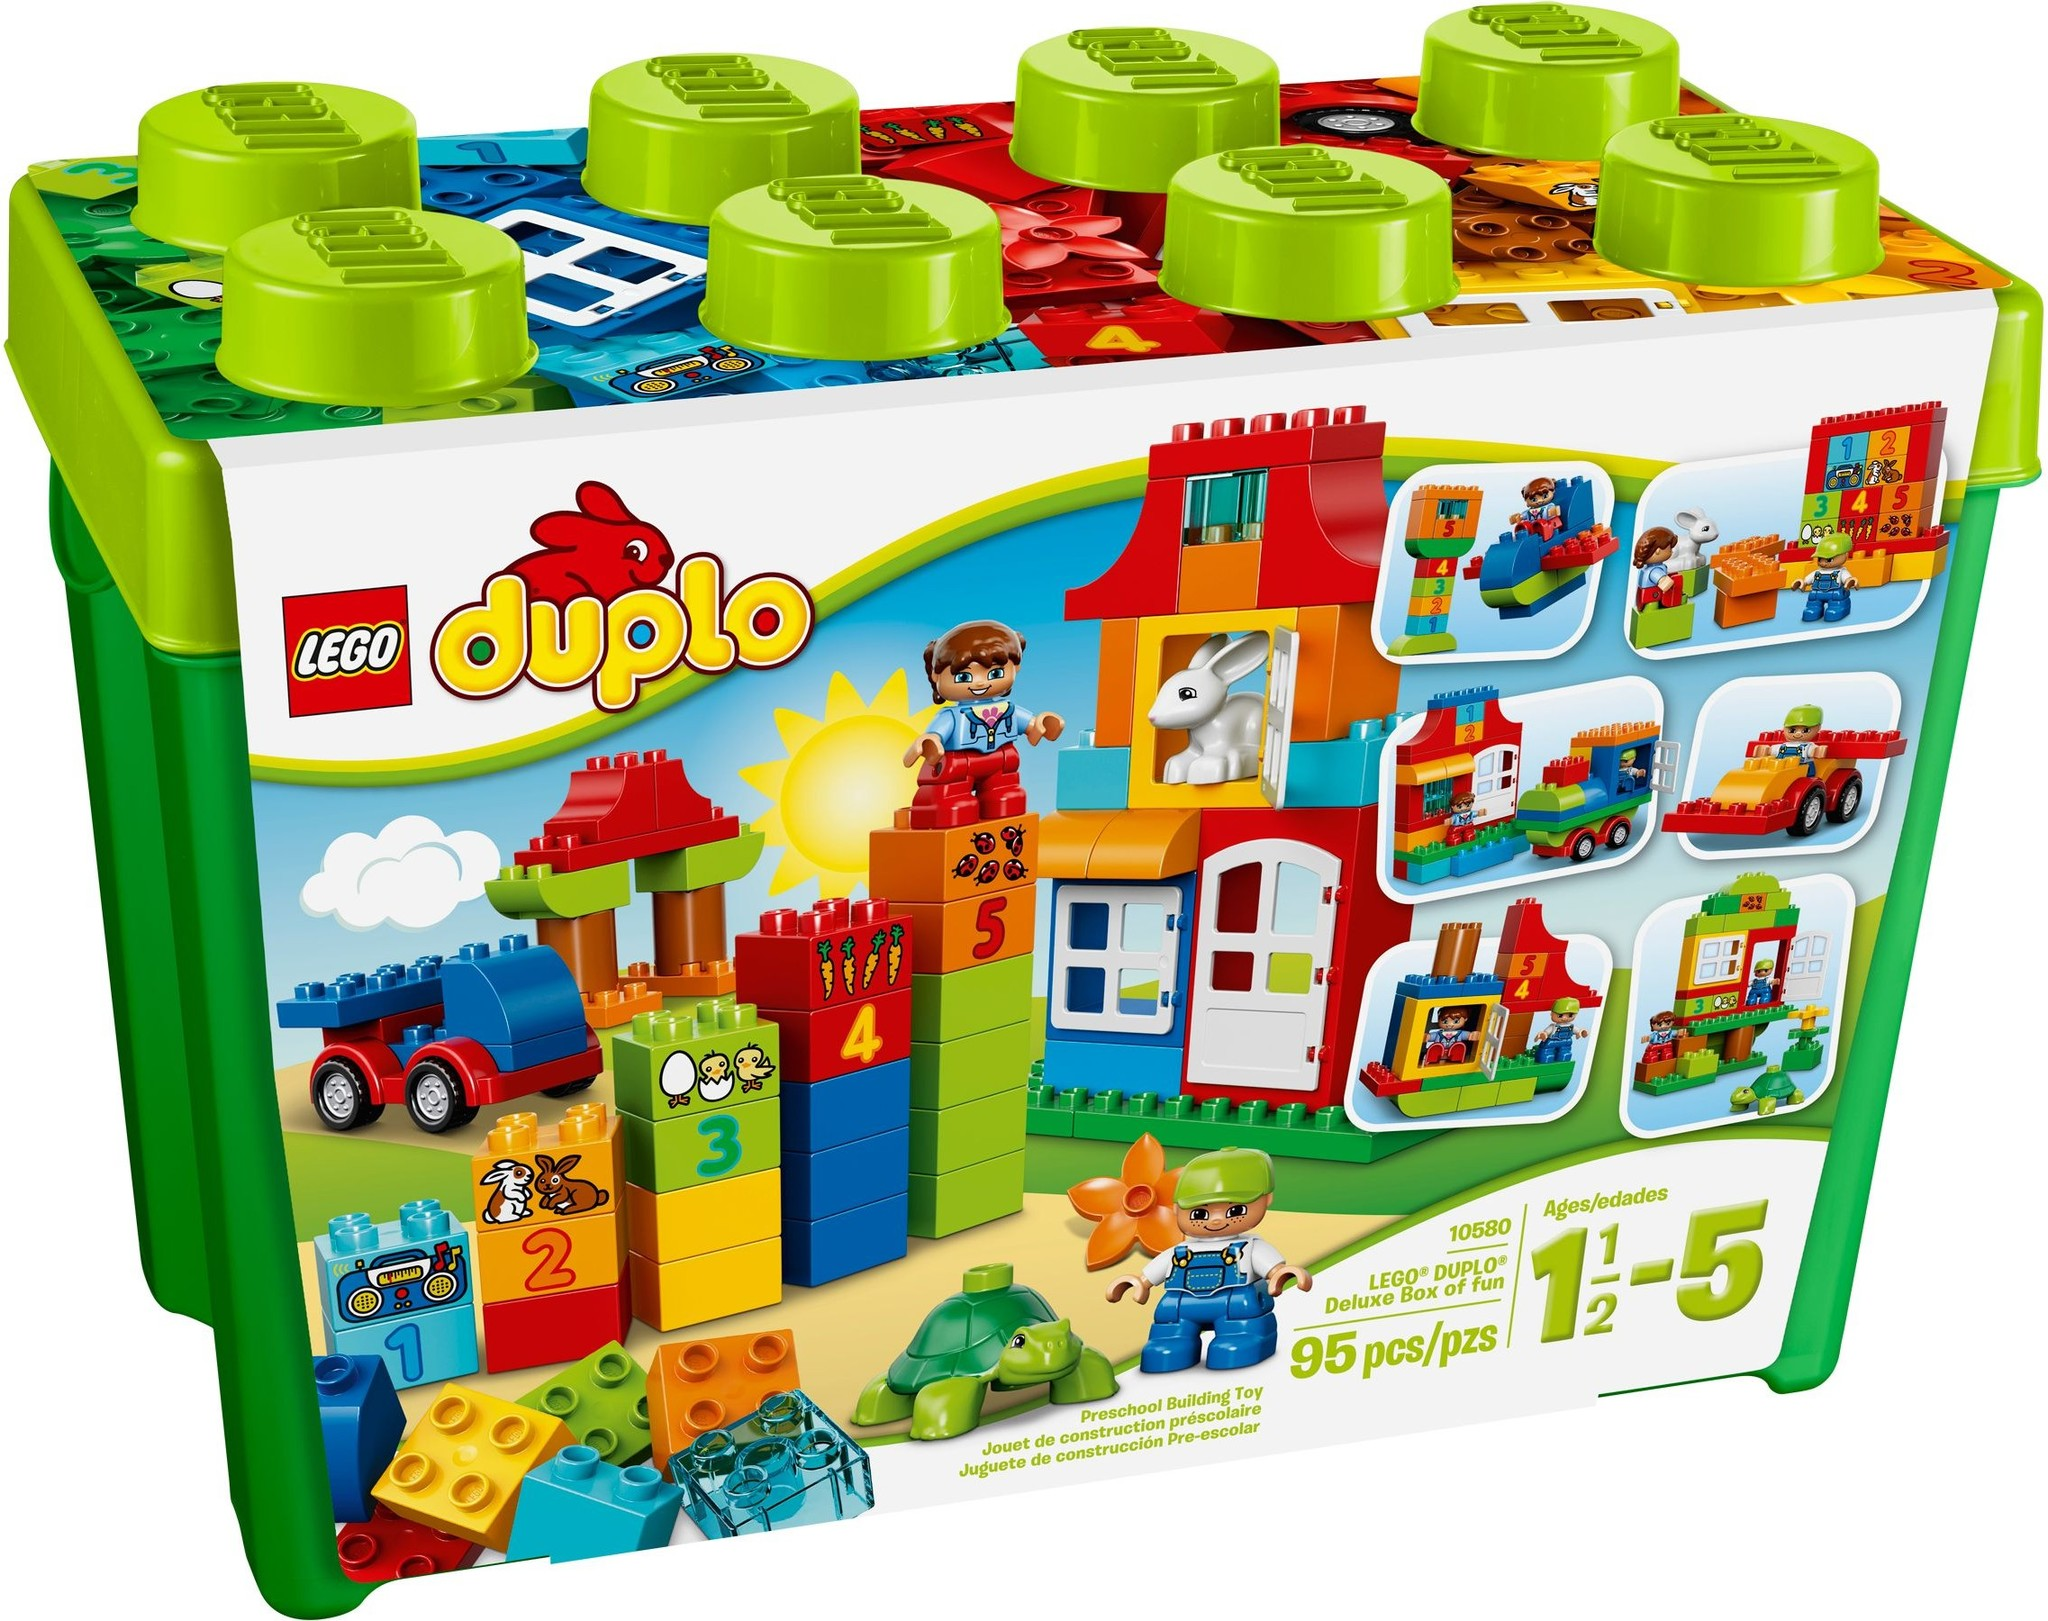 LEGO 10580 - Duplo - Deluxe Box of Fun